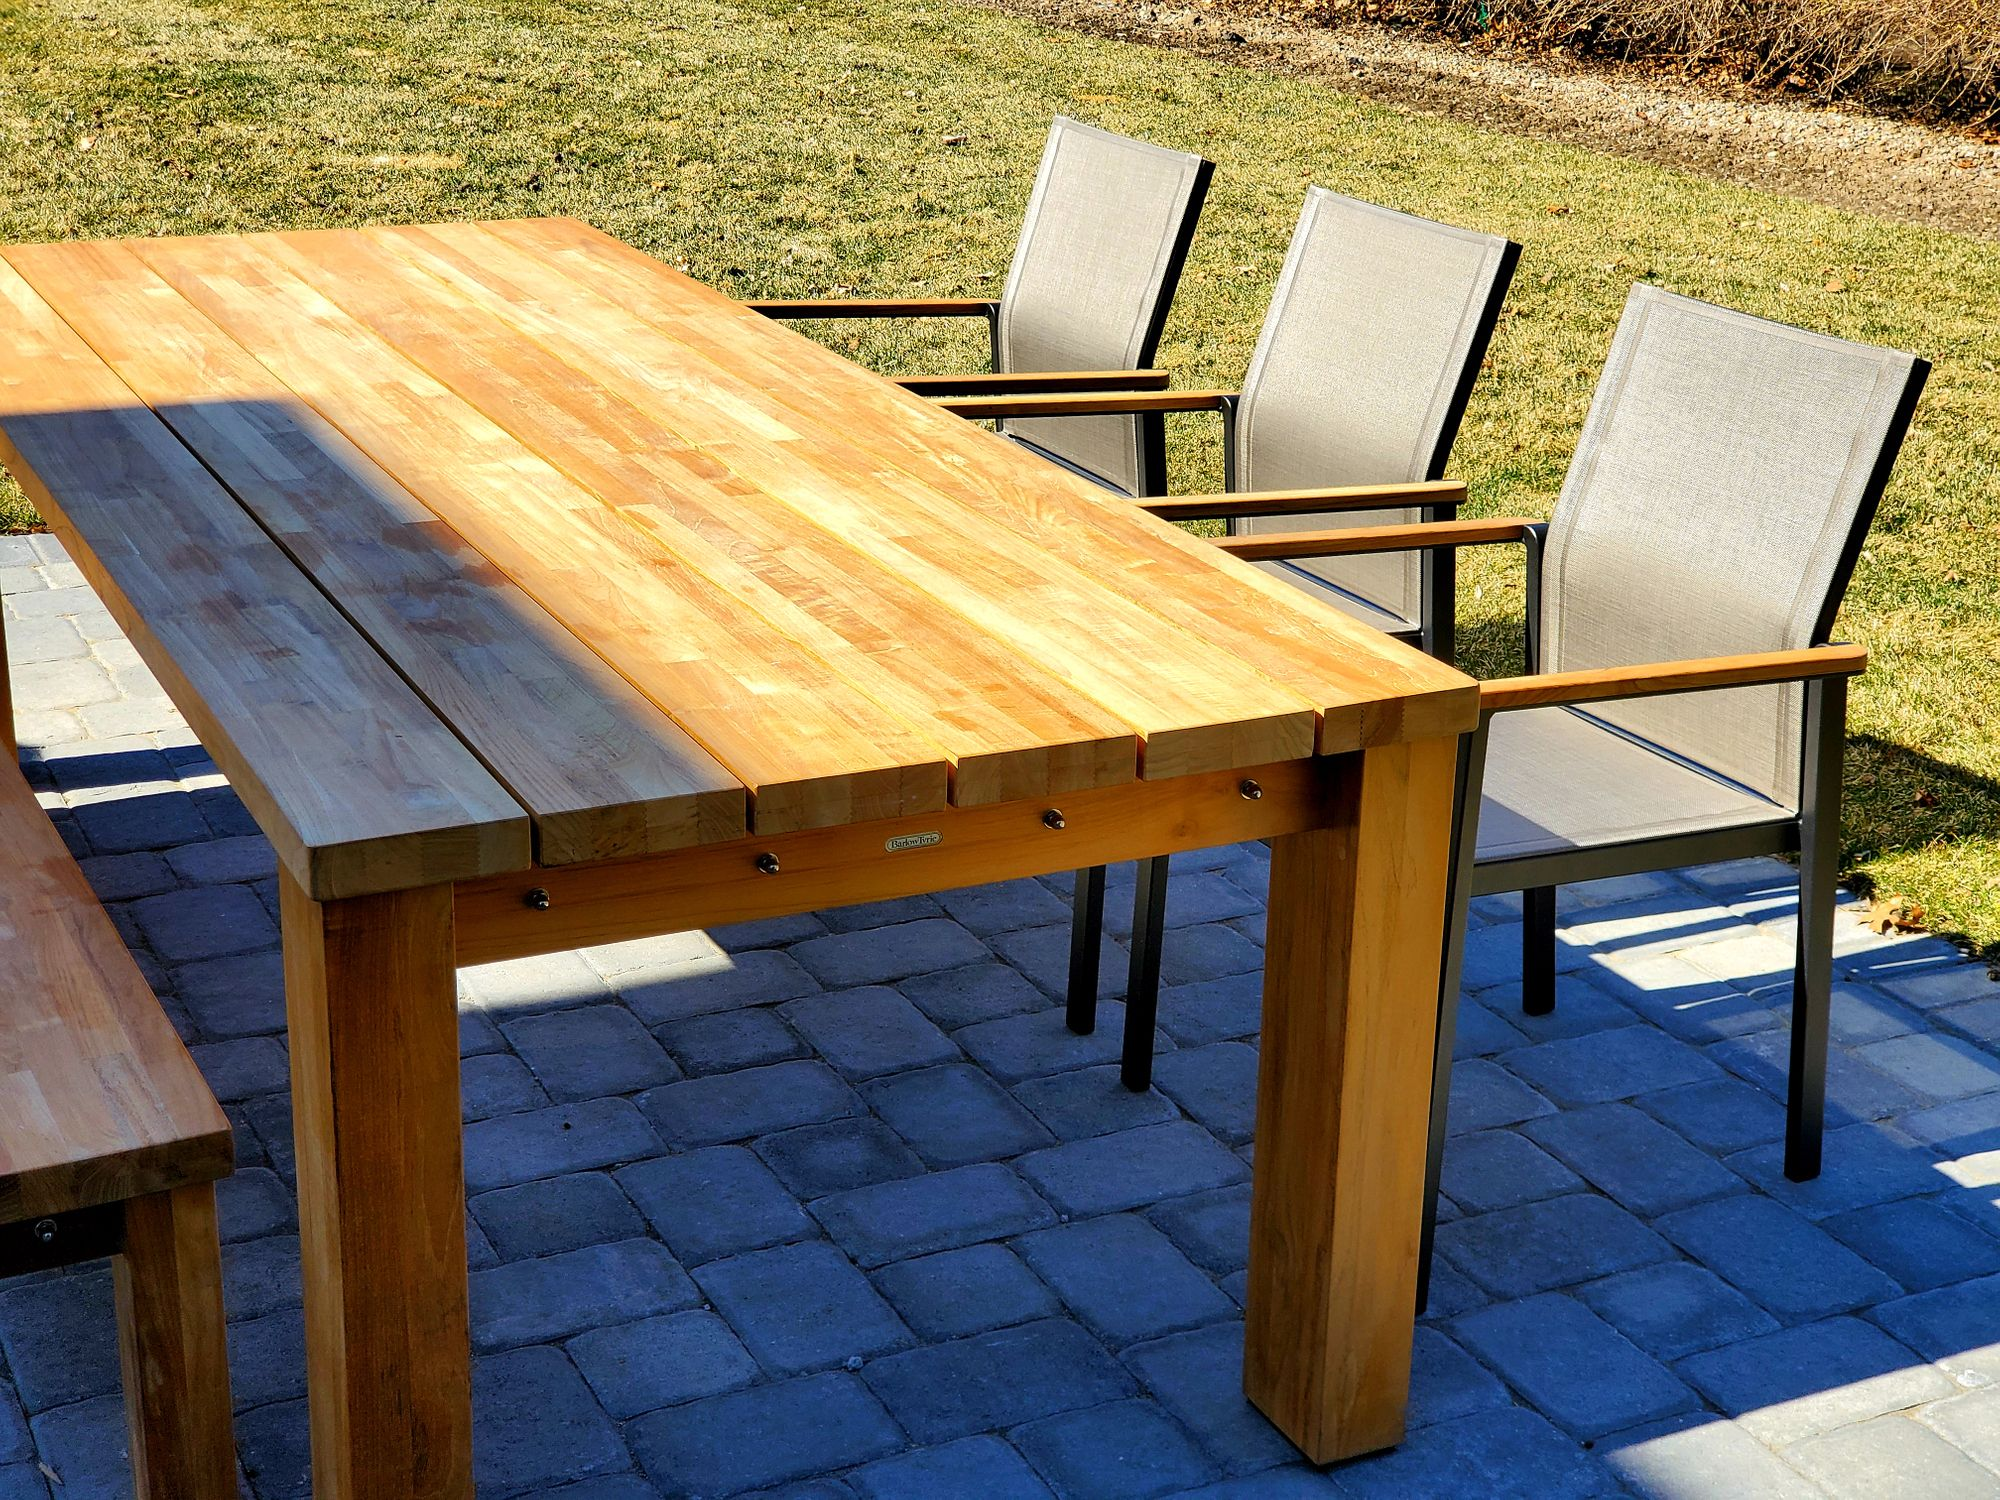 Titan Table With Aura Chairs In 2020 Teak Table Teak Furniture Outdoor Furniture